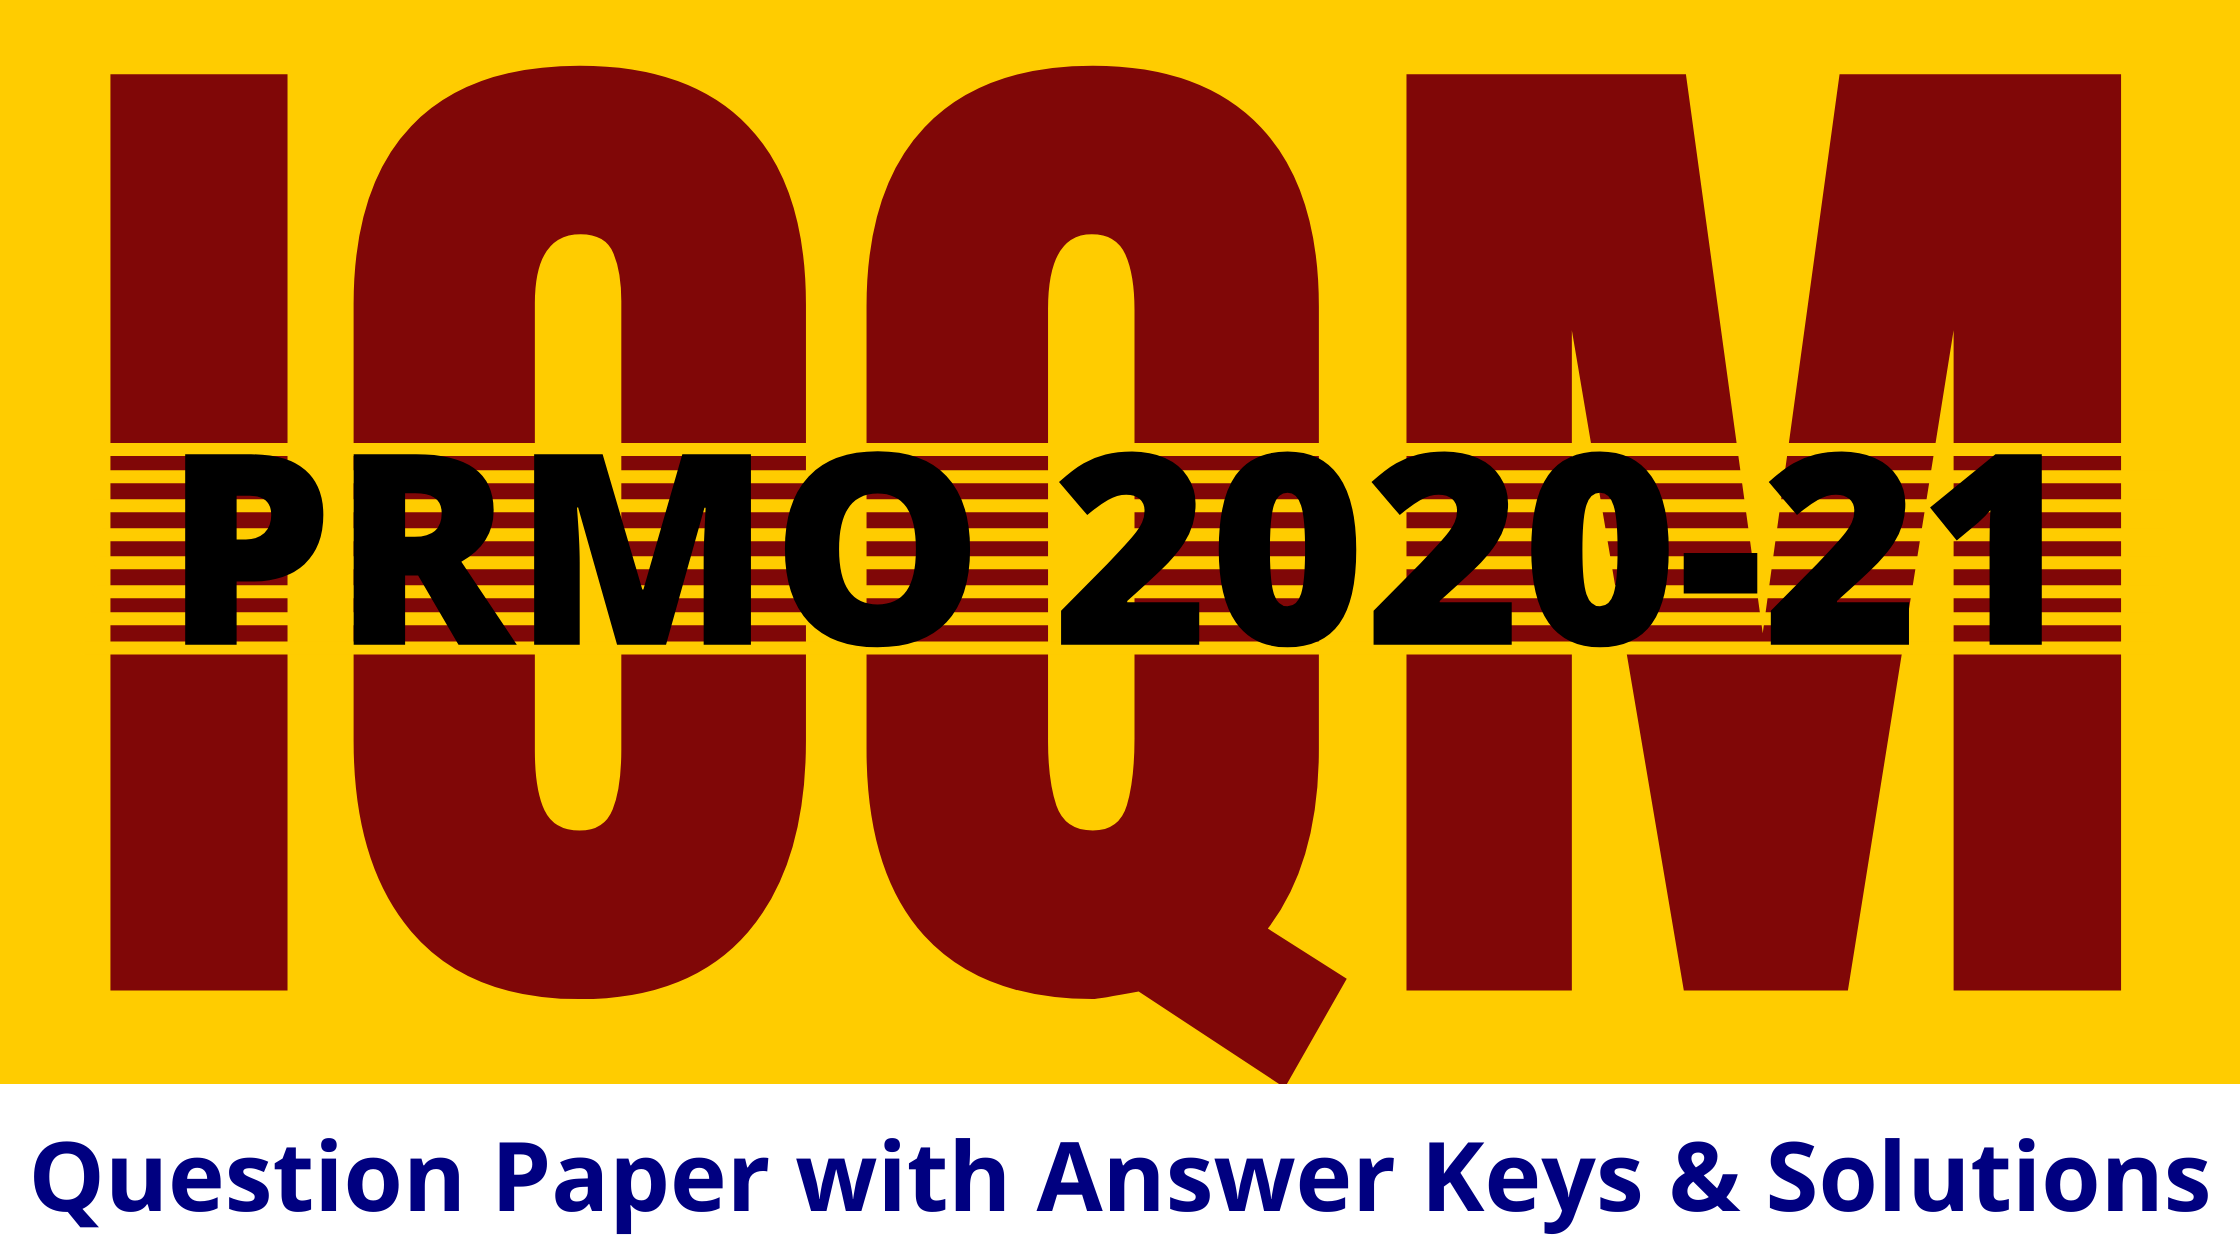 pre-rmo-2020-ioqm-2020-21-questions-paper-with-answer-keys-and-solutions